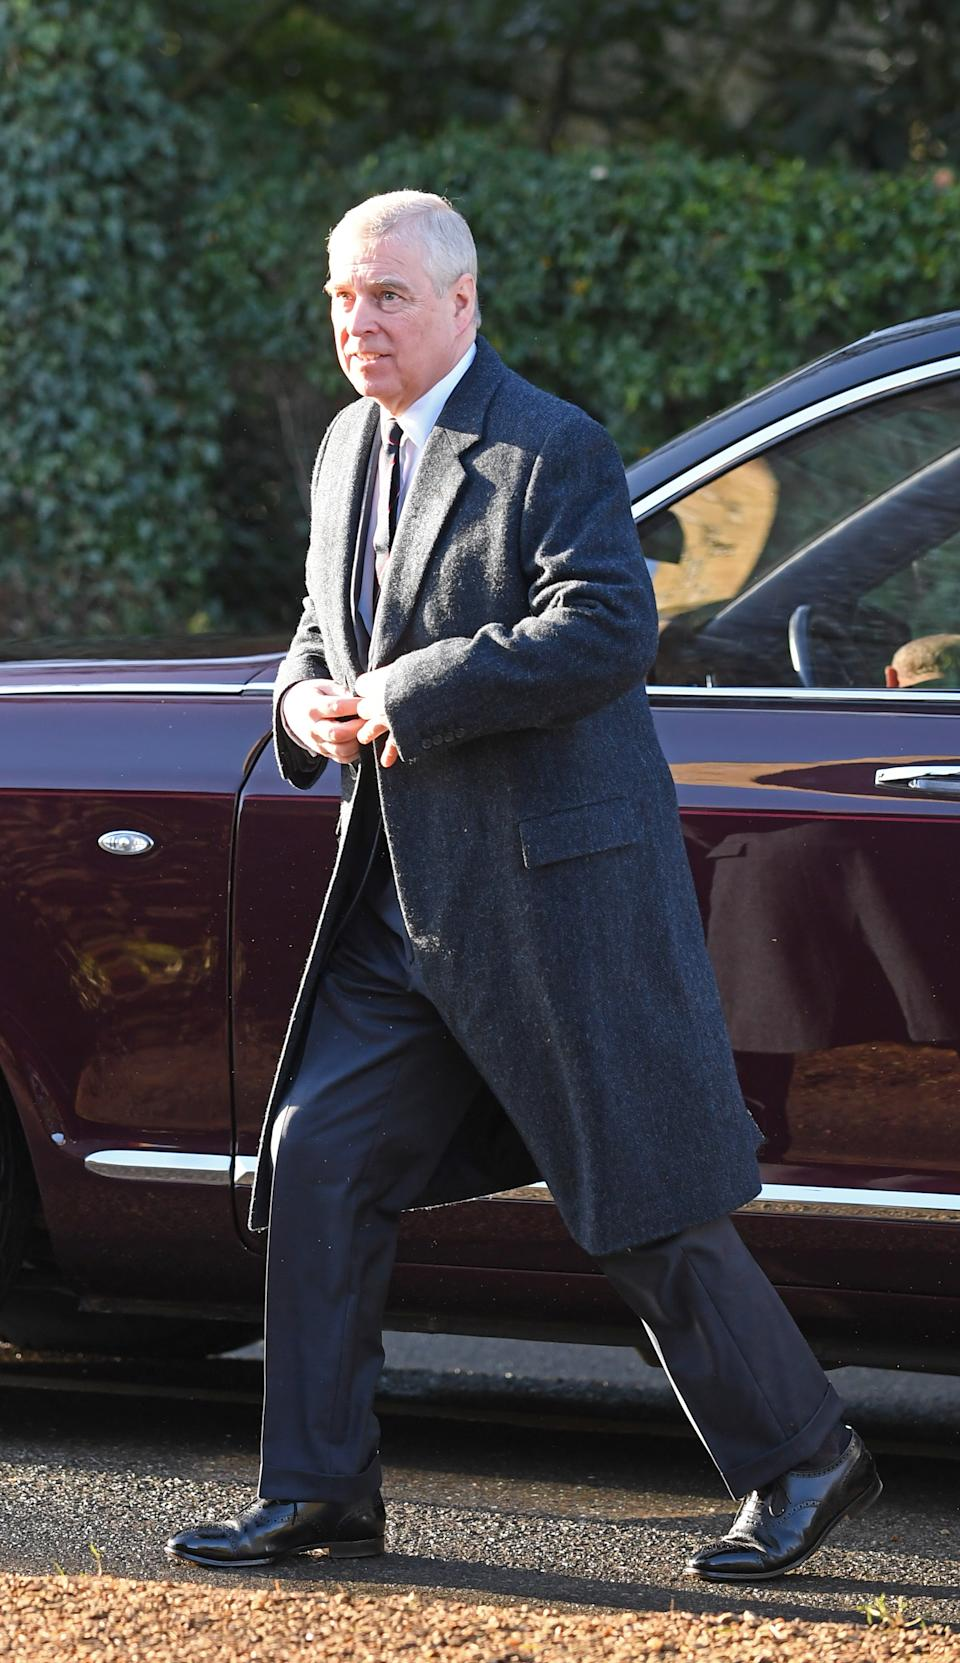 File photo dated 19/1/2020 of the Duke of York. Jeffrey Epstein-accuser Virginia Giuffre has started legal action against the Duke of York and said it was